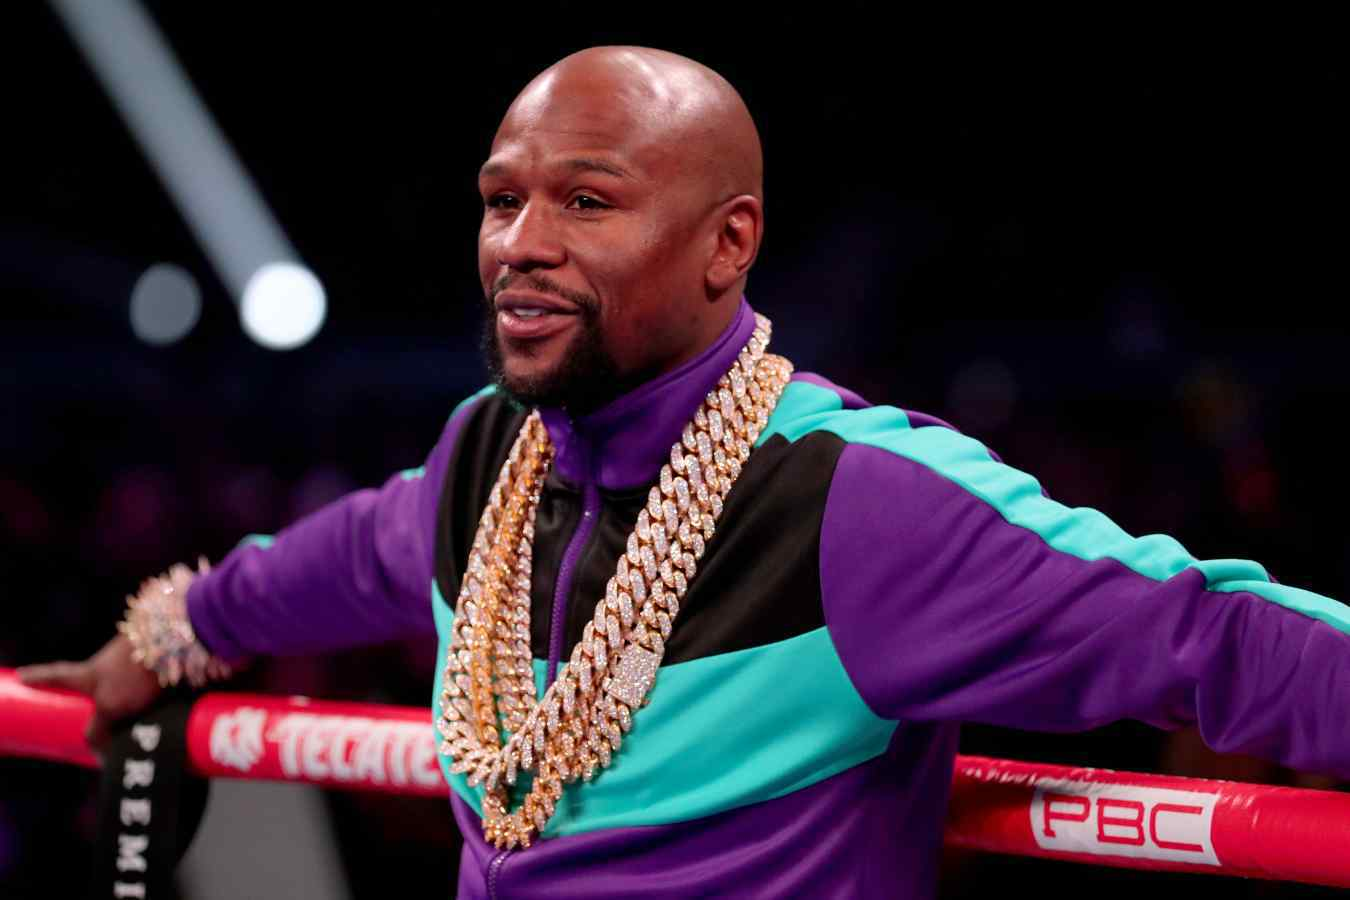 Floyd Mayweather started a revolutionary business: how will he earn 1 million dollars in just a few hours?